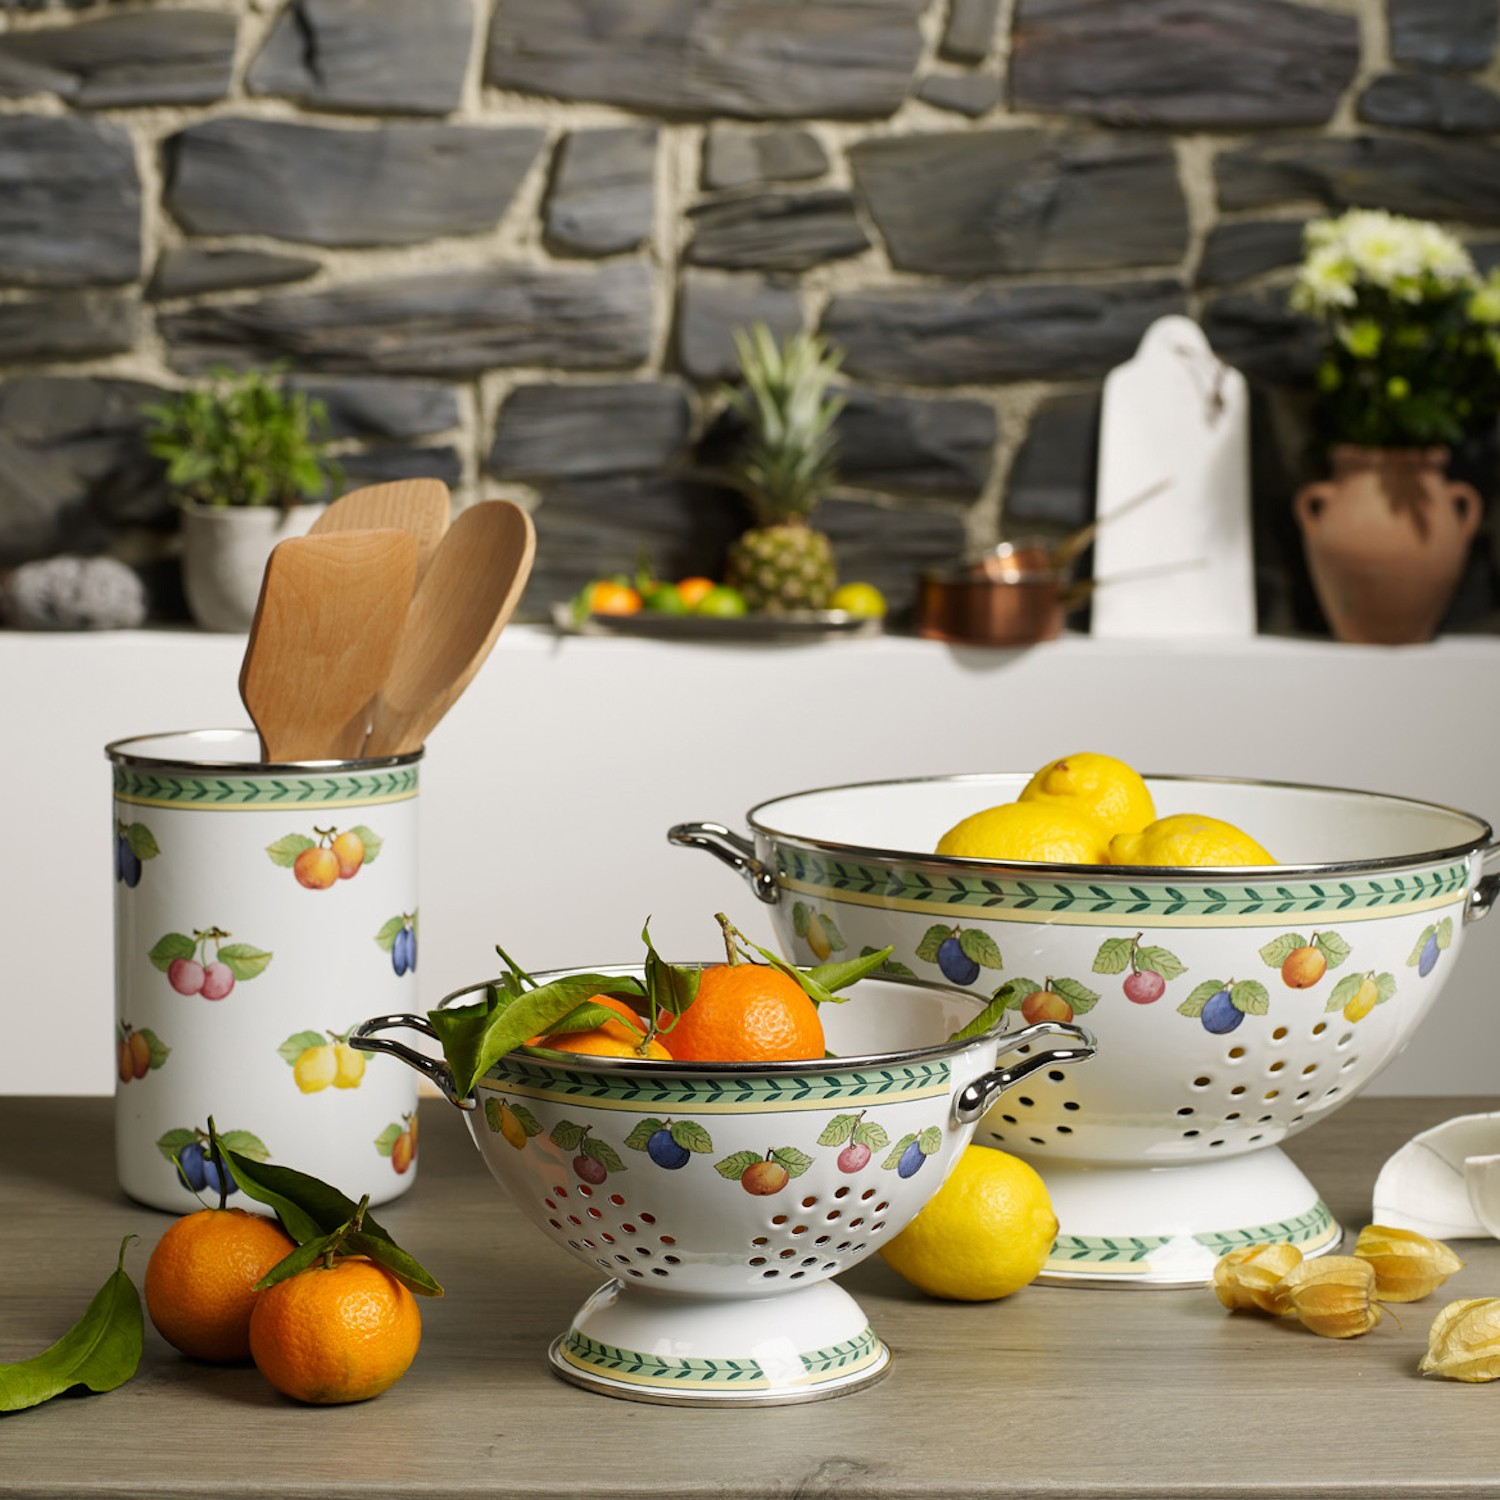 French Kitchen Garden: Durszlak S Villeroy & Boch French Garden Kitchen